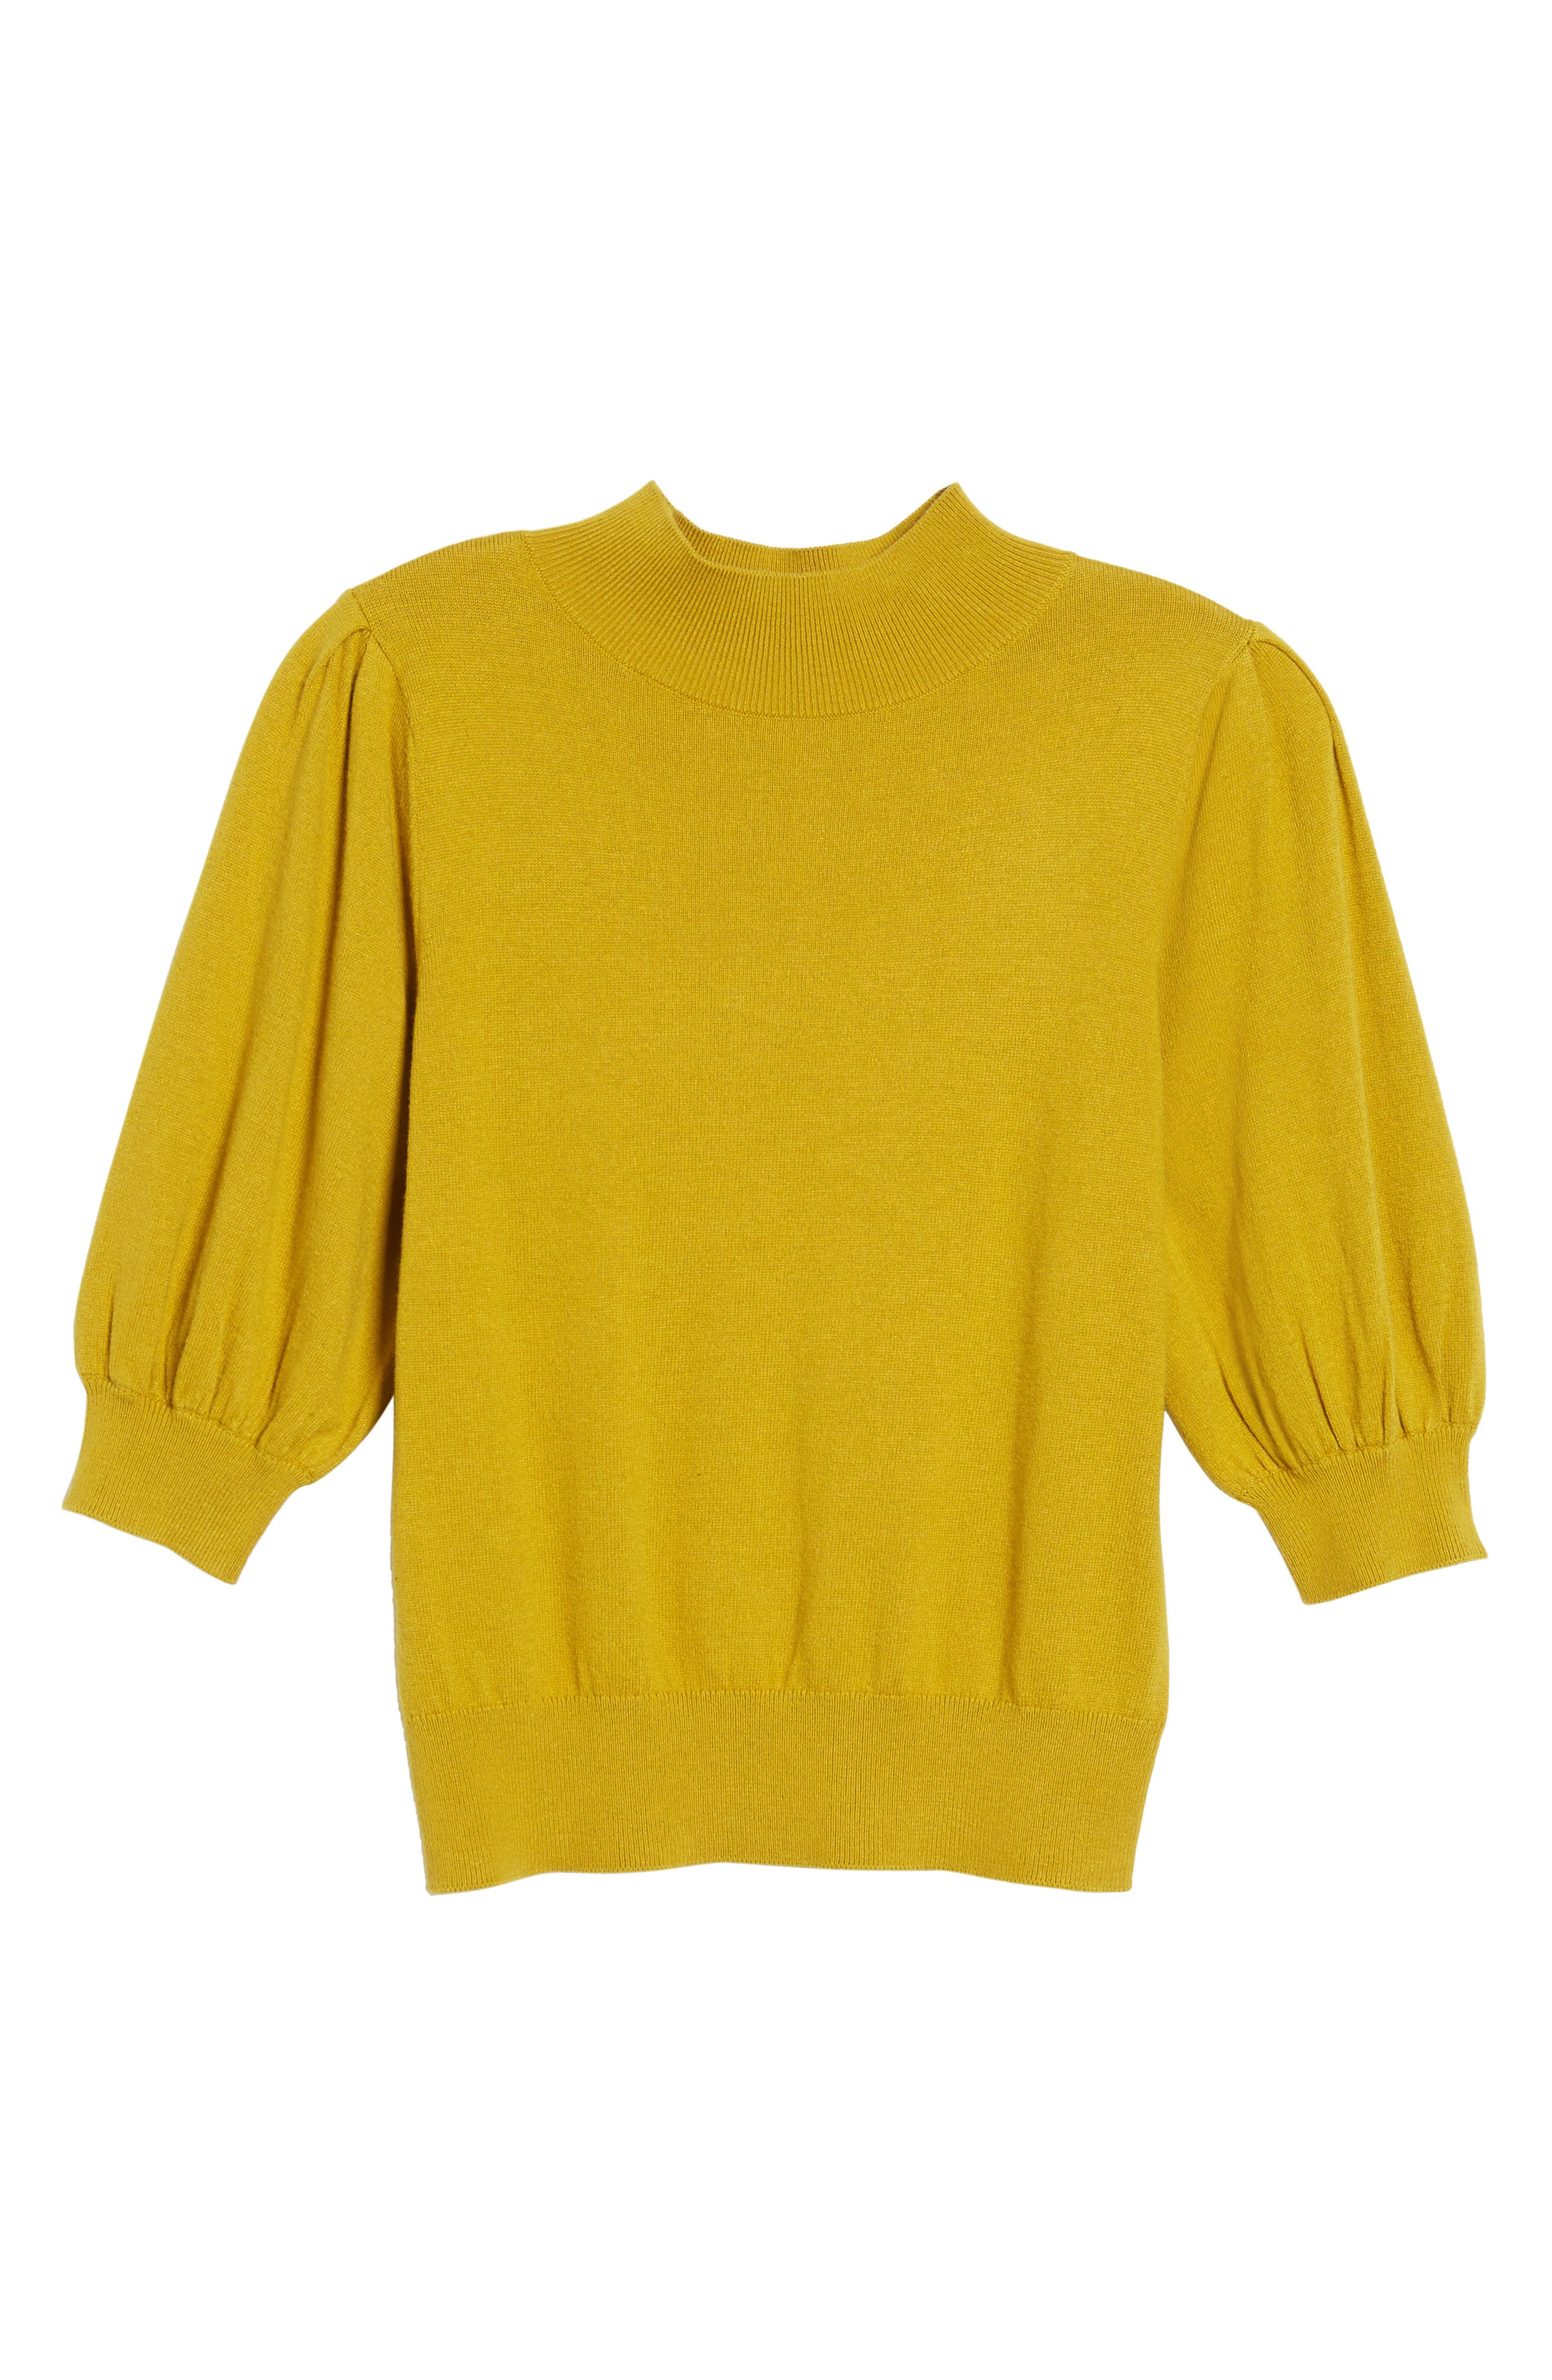 Puff Sleeve Sweater,                             Alternate thumbnail 18, color,